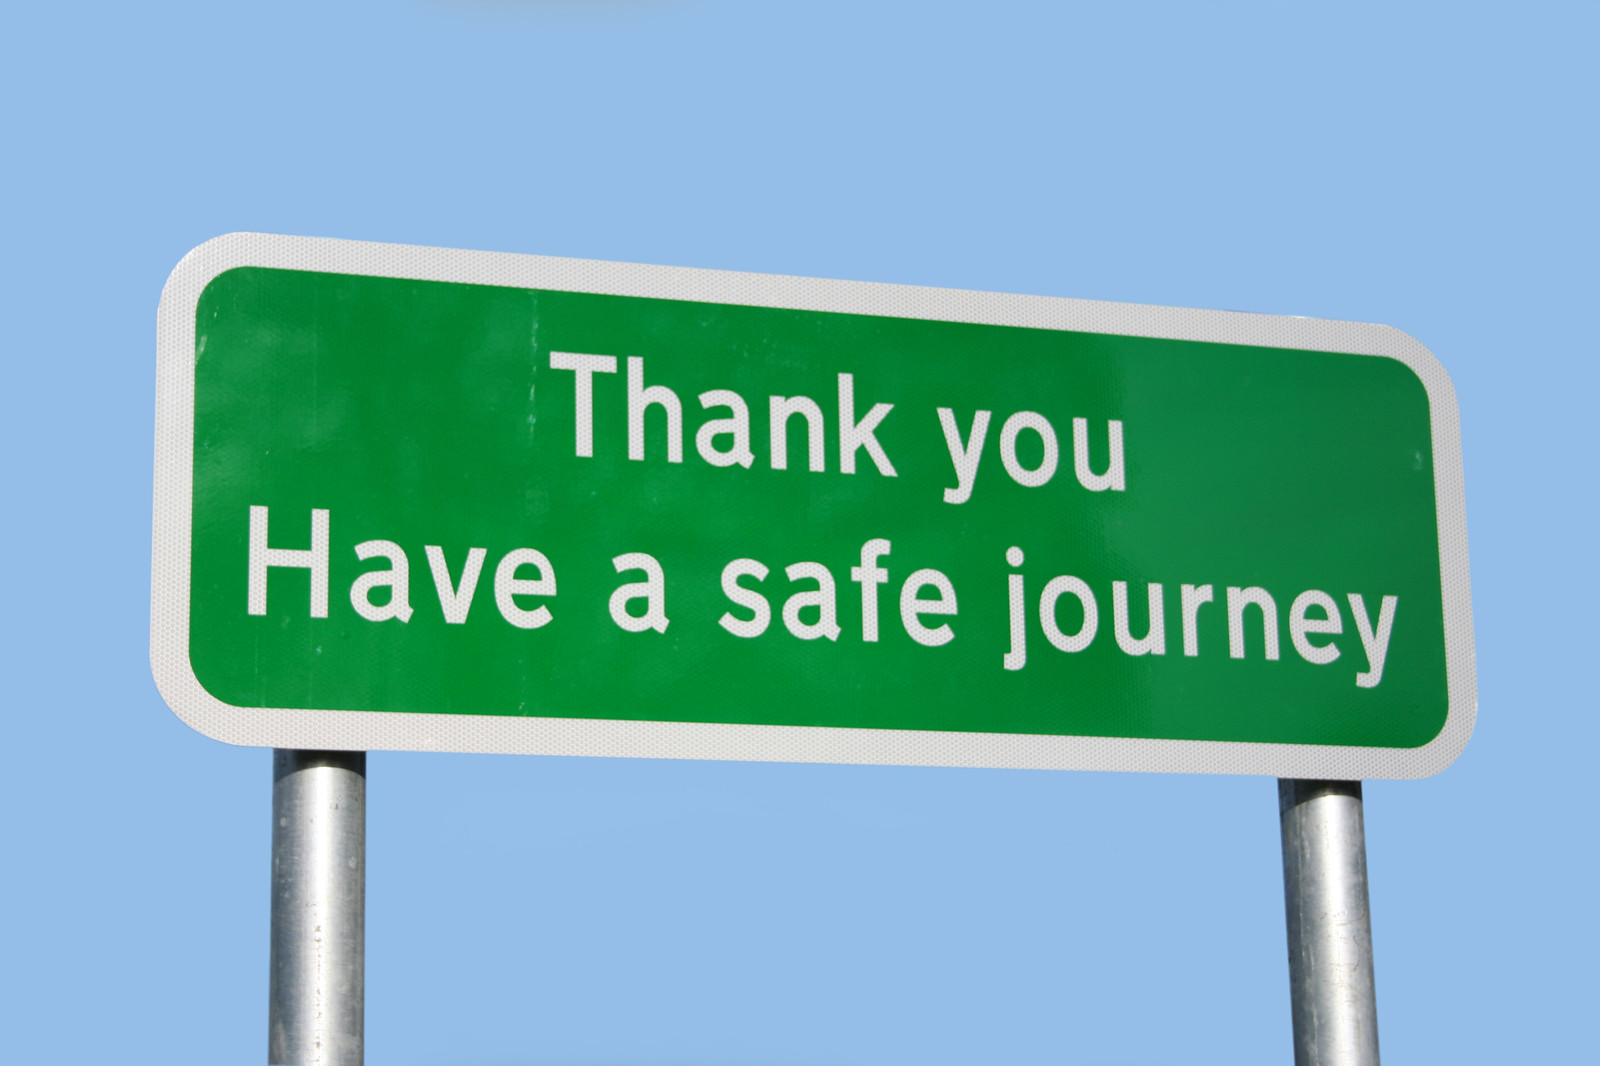 TIPS TO ACCOMPLISH A SAFE TRAVELLING